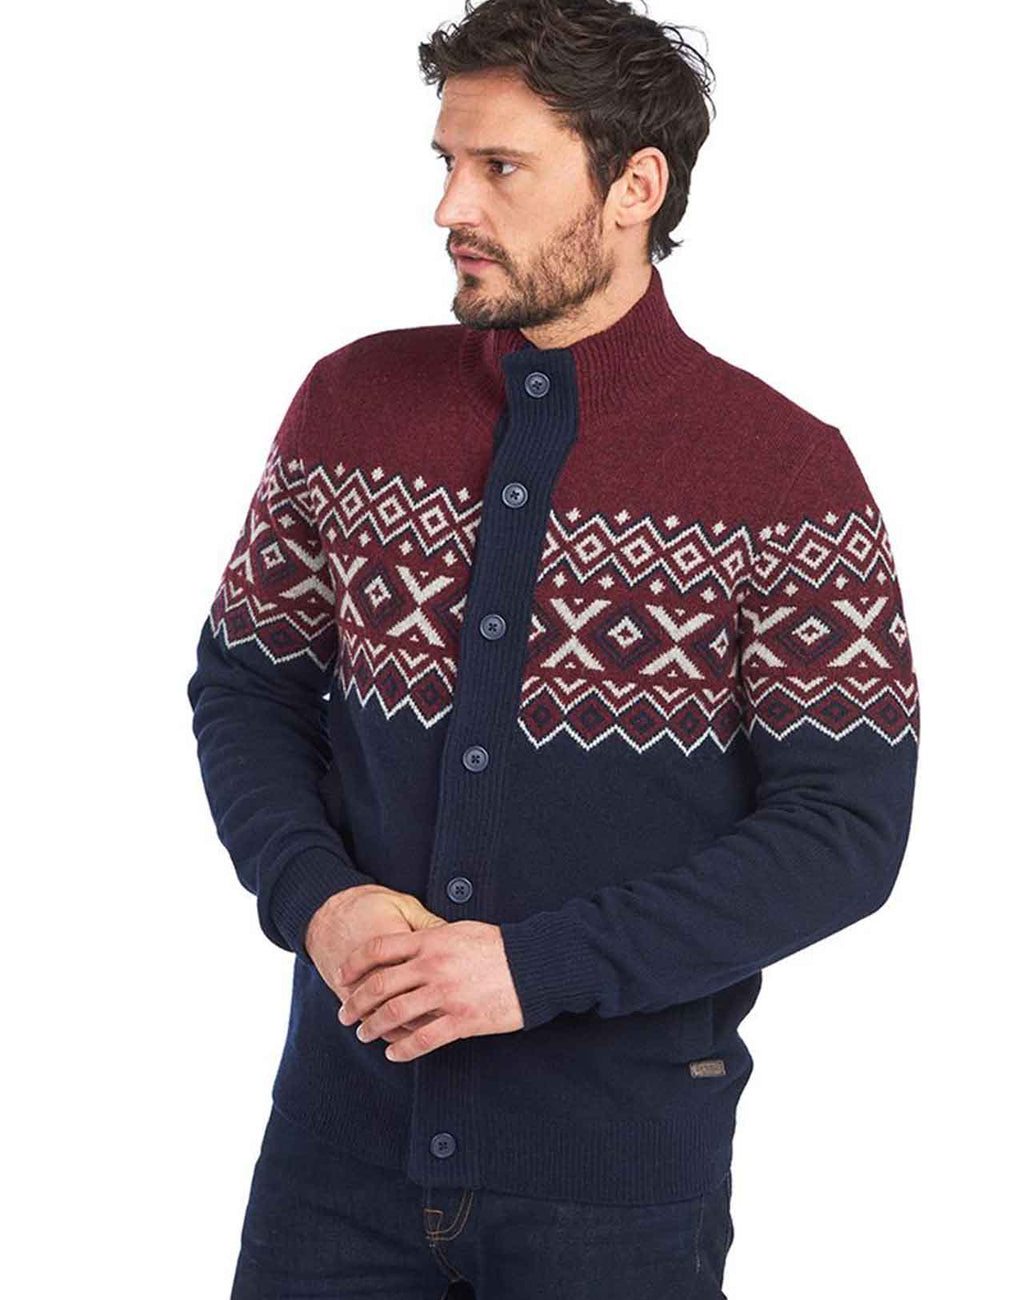 Cardigan Kirk Barbour retro en laine couleur merlot et navy